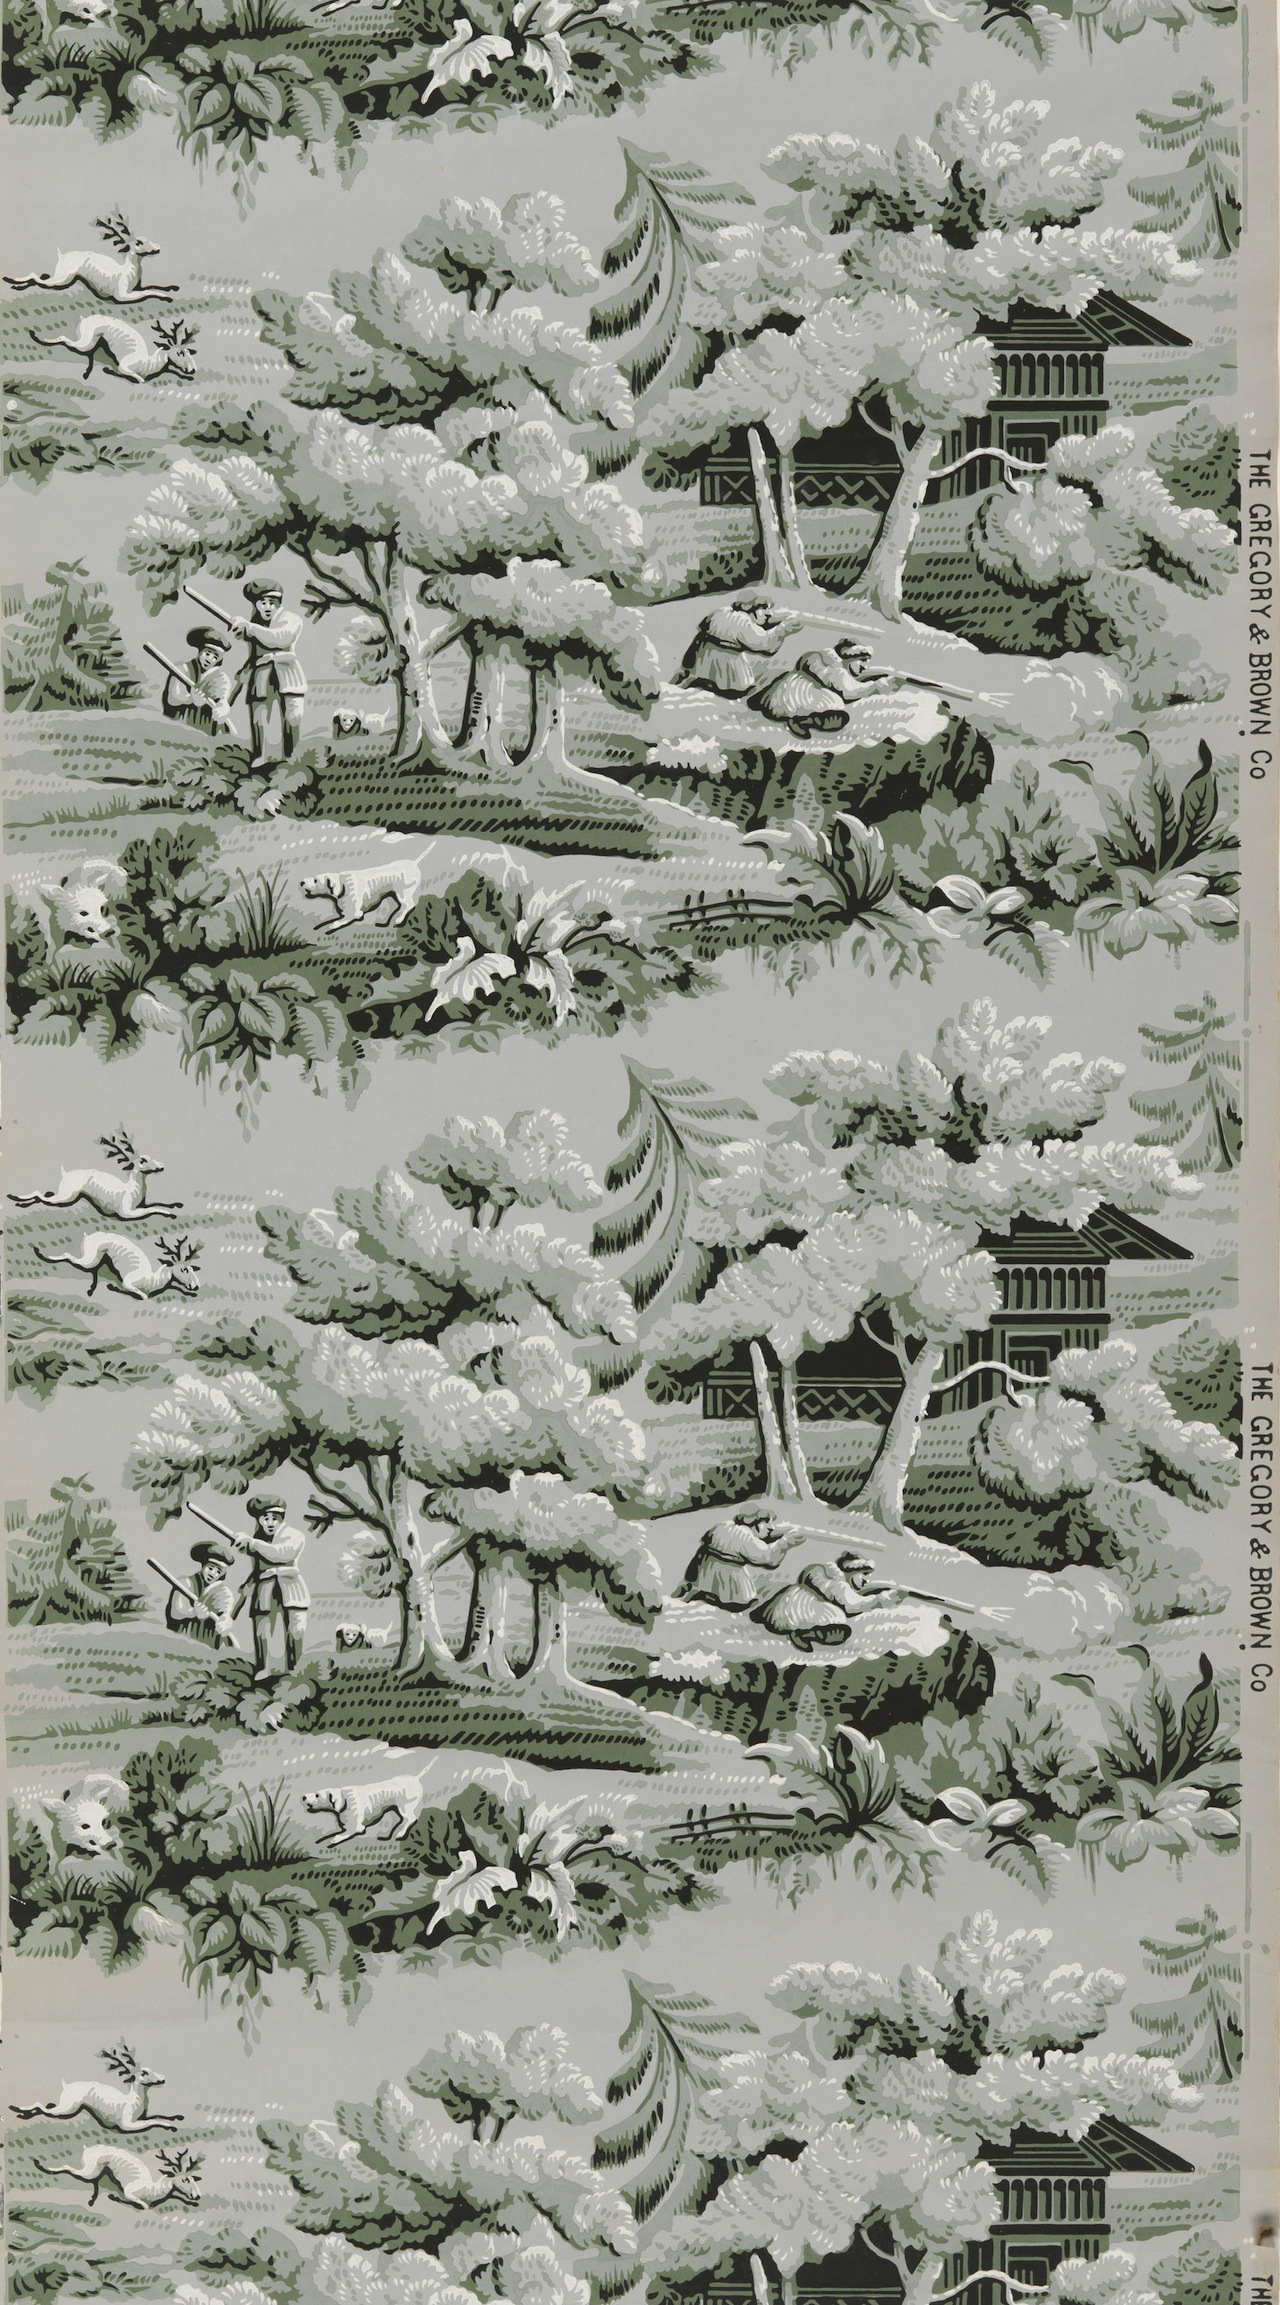 Four partial wallpaper rolls. Repeating vignettes of a stag and boar hunt in a forest. An ornate cabin is nestled among pine trees. Printed in two greens, black and white.